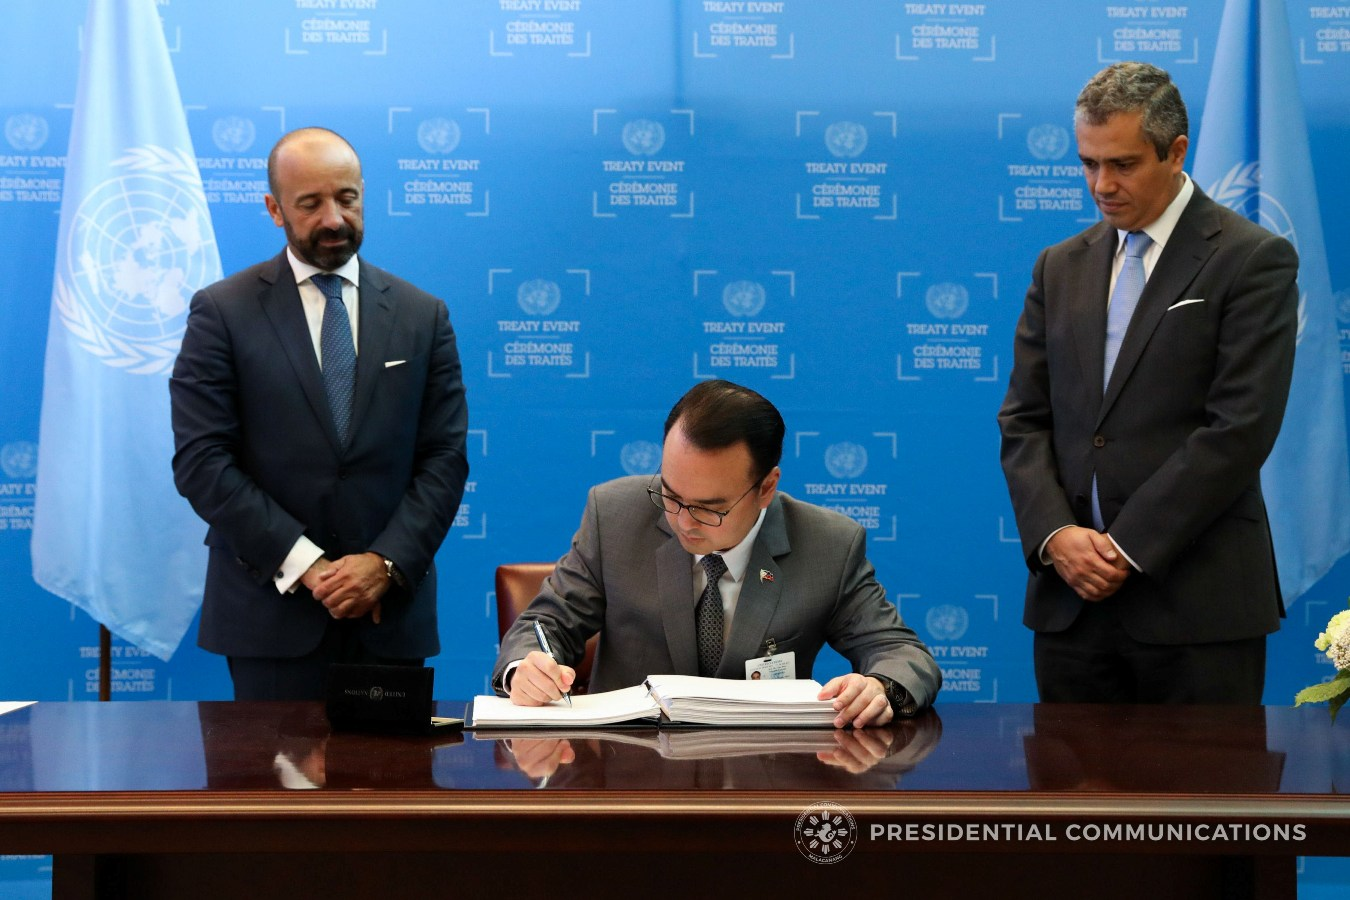 The Philippines represented by Foreign Affairs Secretary Alan Peter Cayetano signs the Treaty on the Prohibition of Nuclear Weapons at the United Nations headquarters in New York on 20 September 2017.